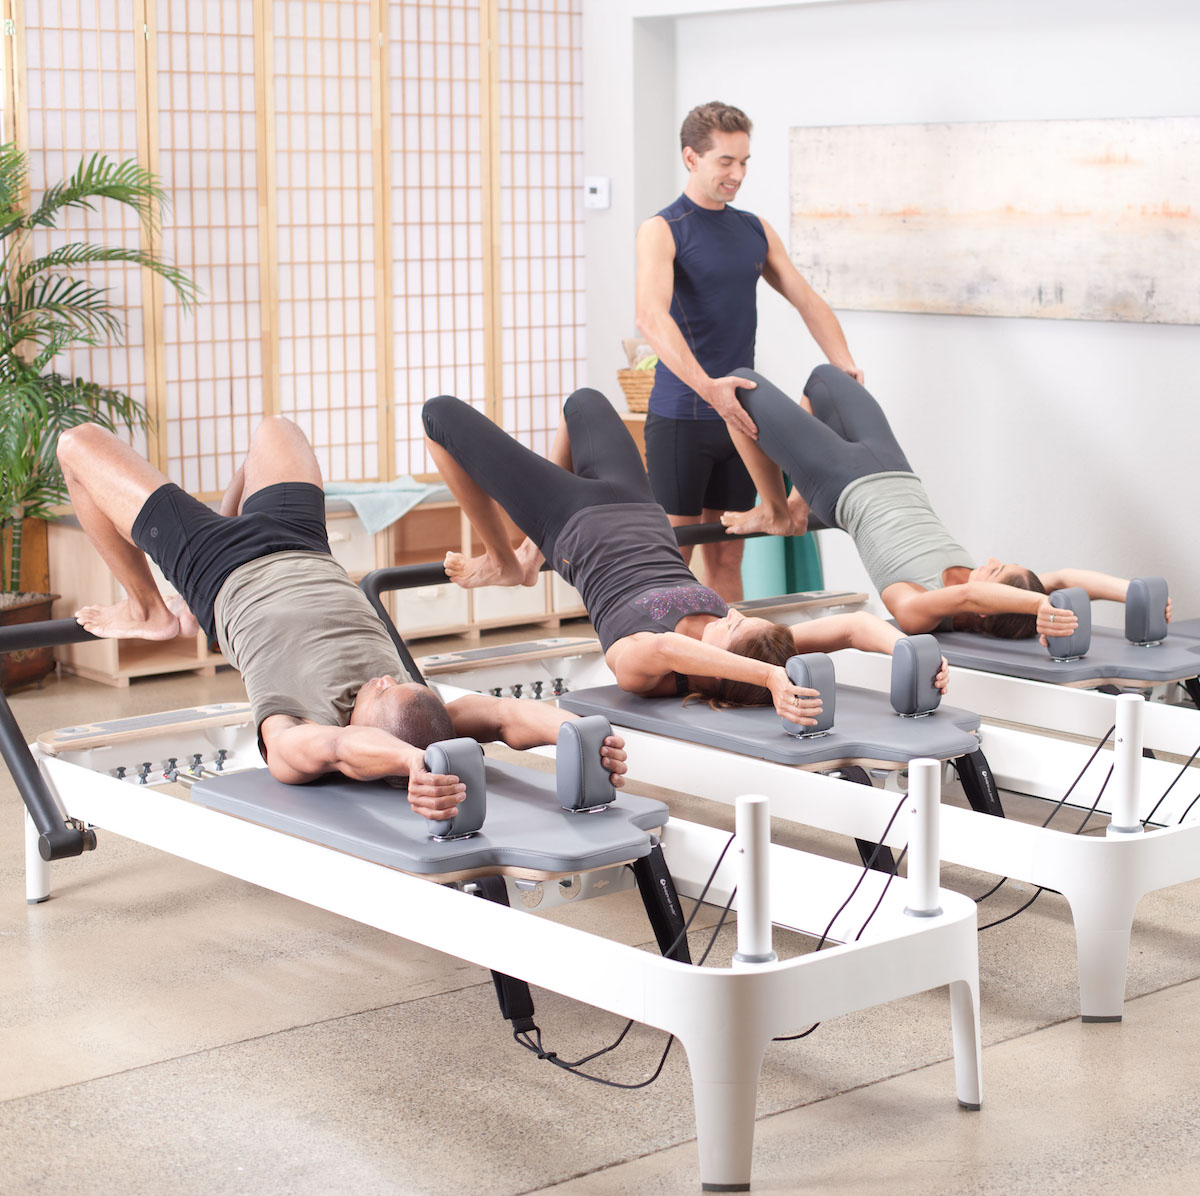 Pilates REFORMER TEST OUT - Formazione ufficiale Balanced Body